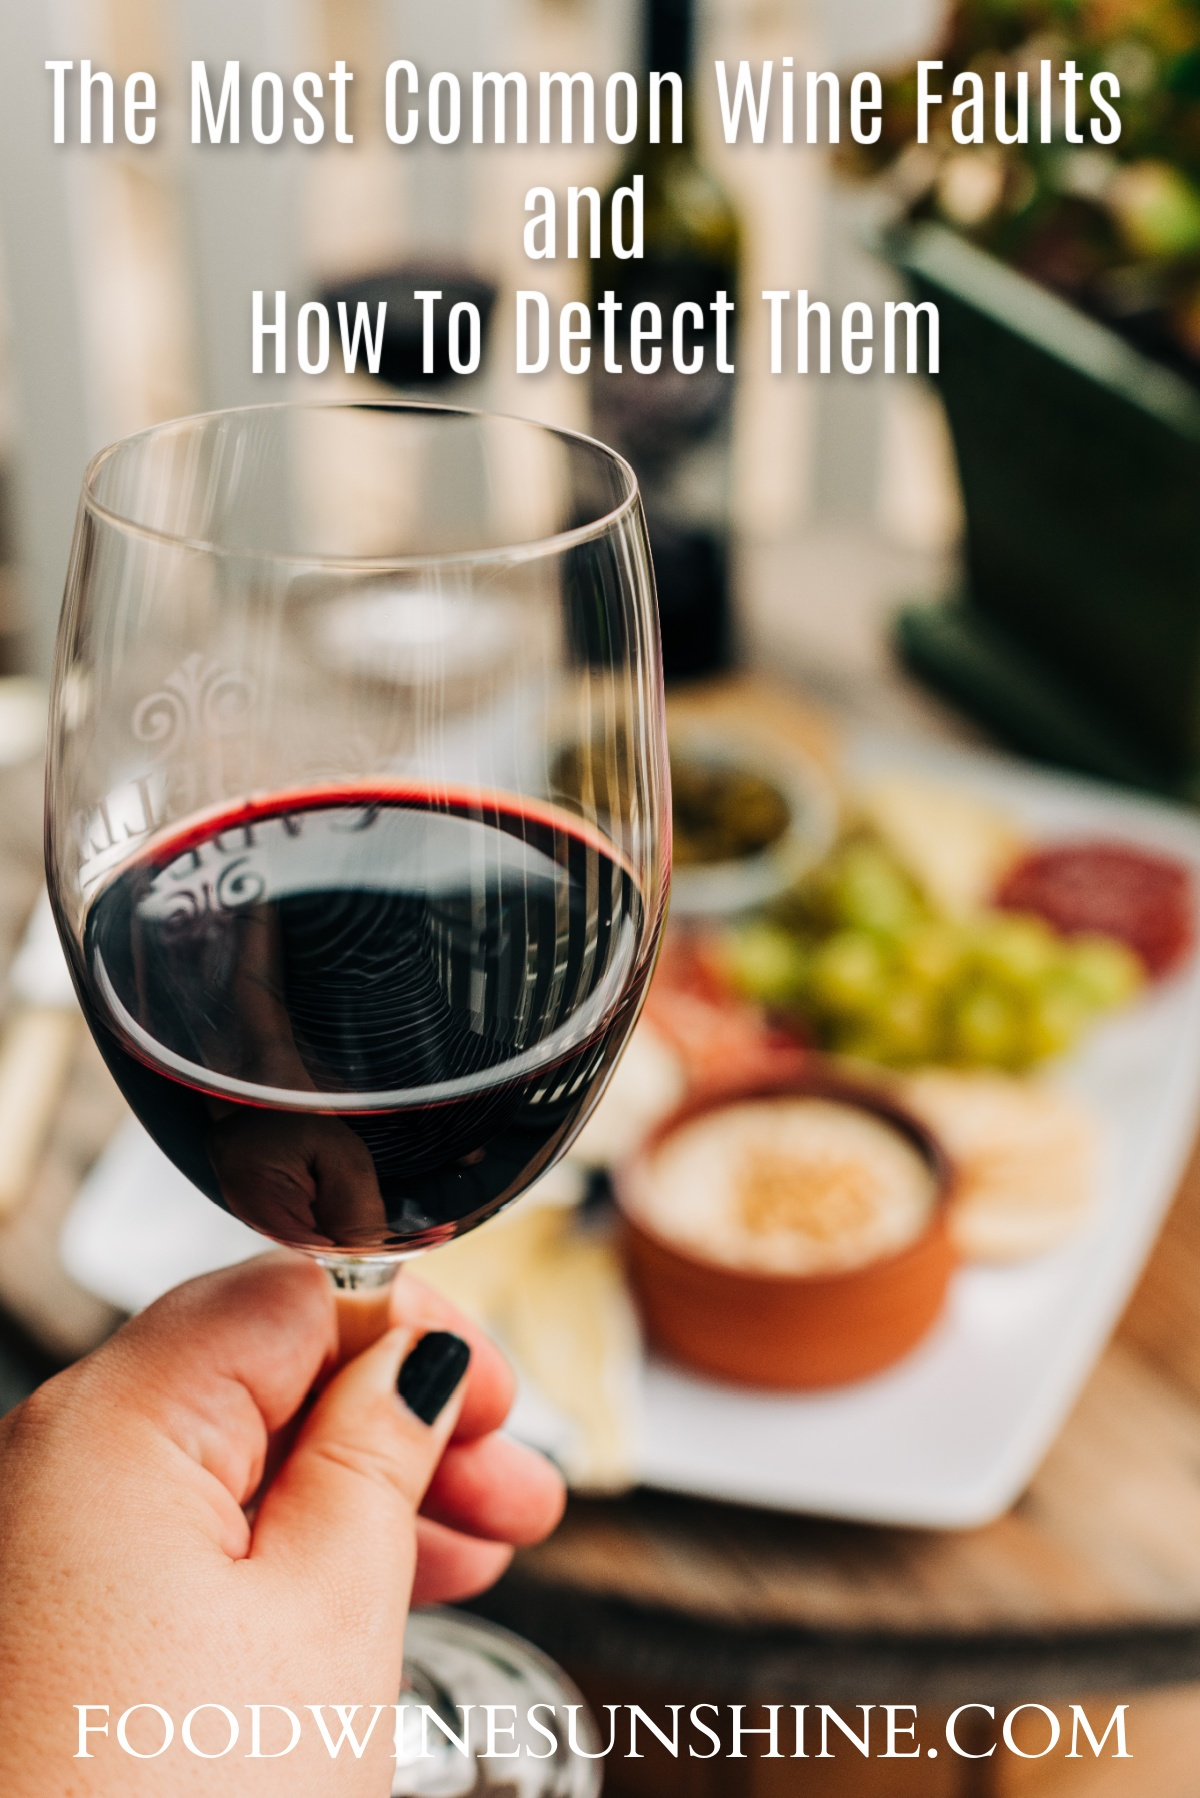 The Most Common Wine Faults and How To Detect Them